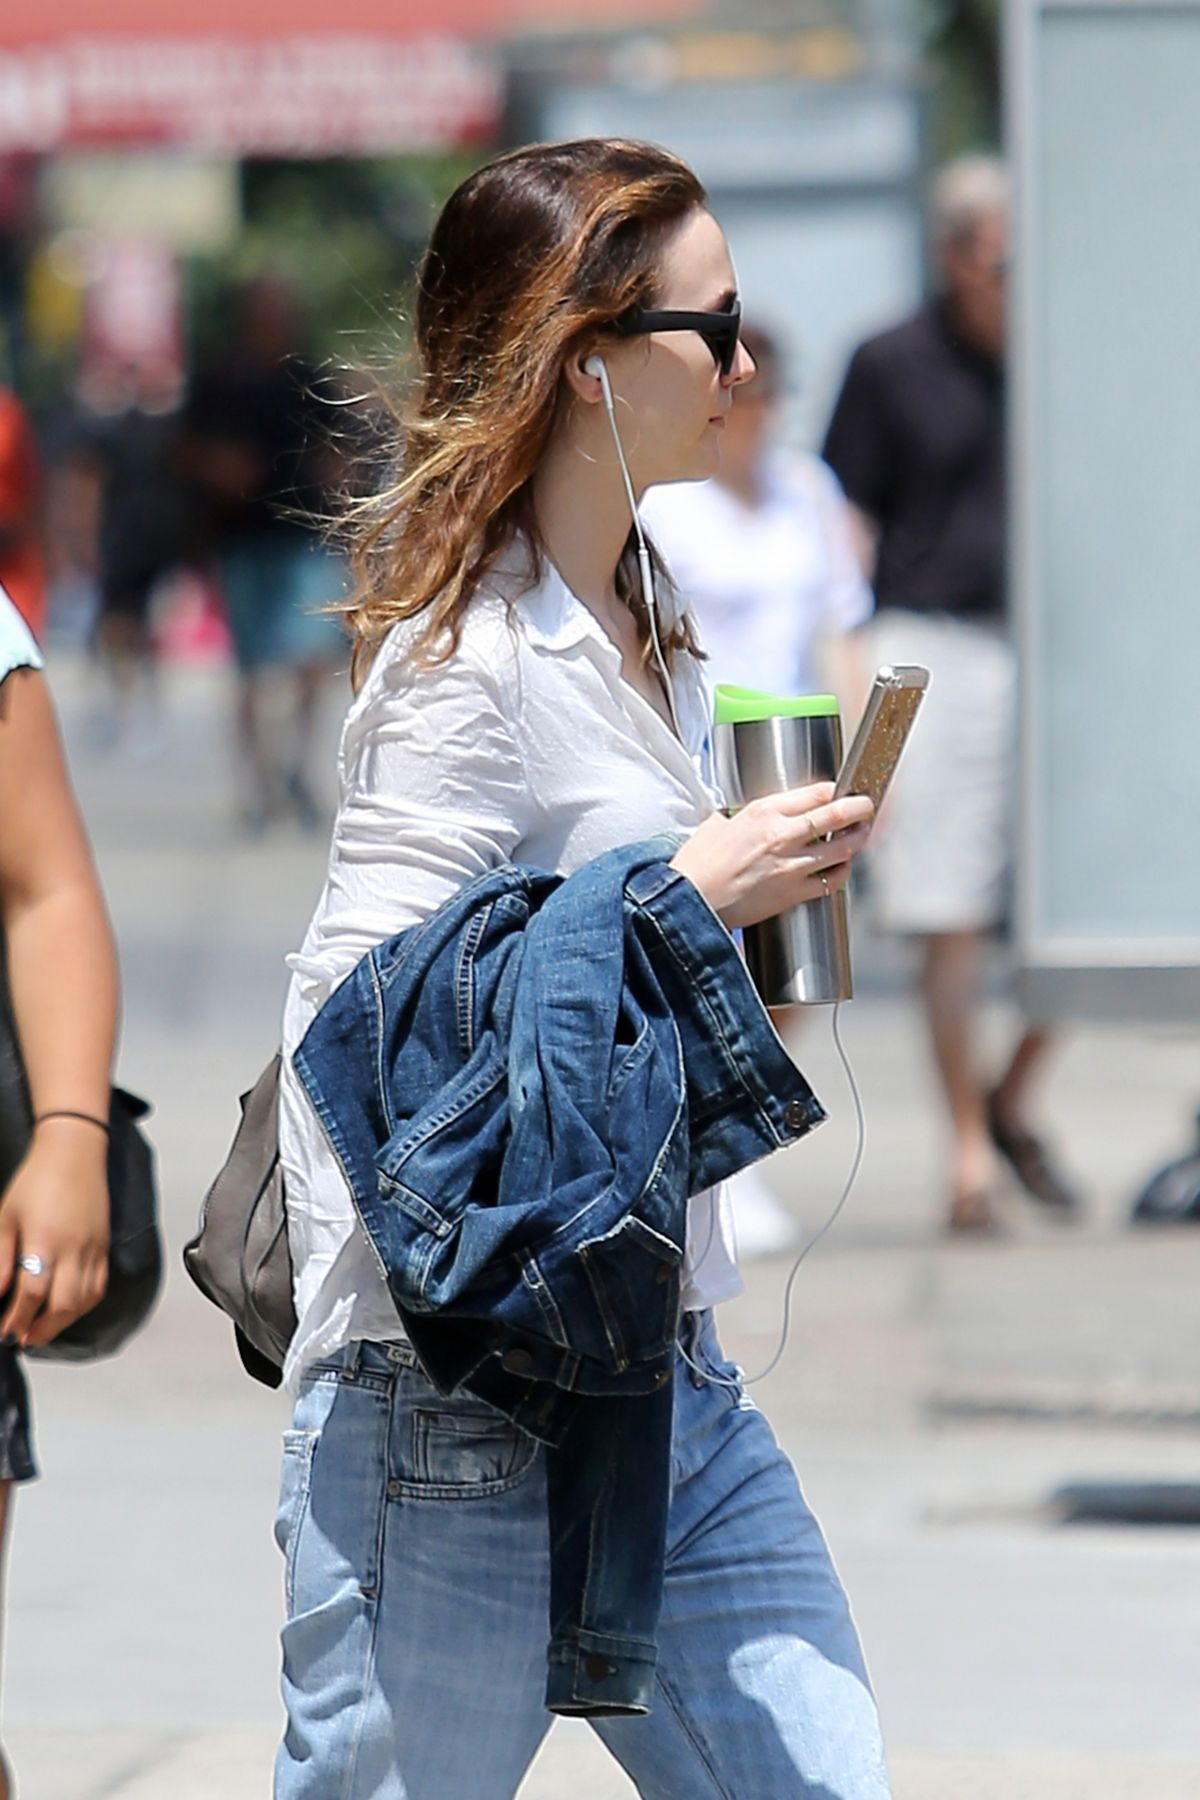 Leighton Meester Out And About In NYC